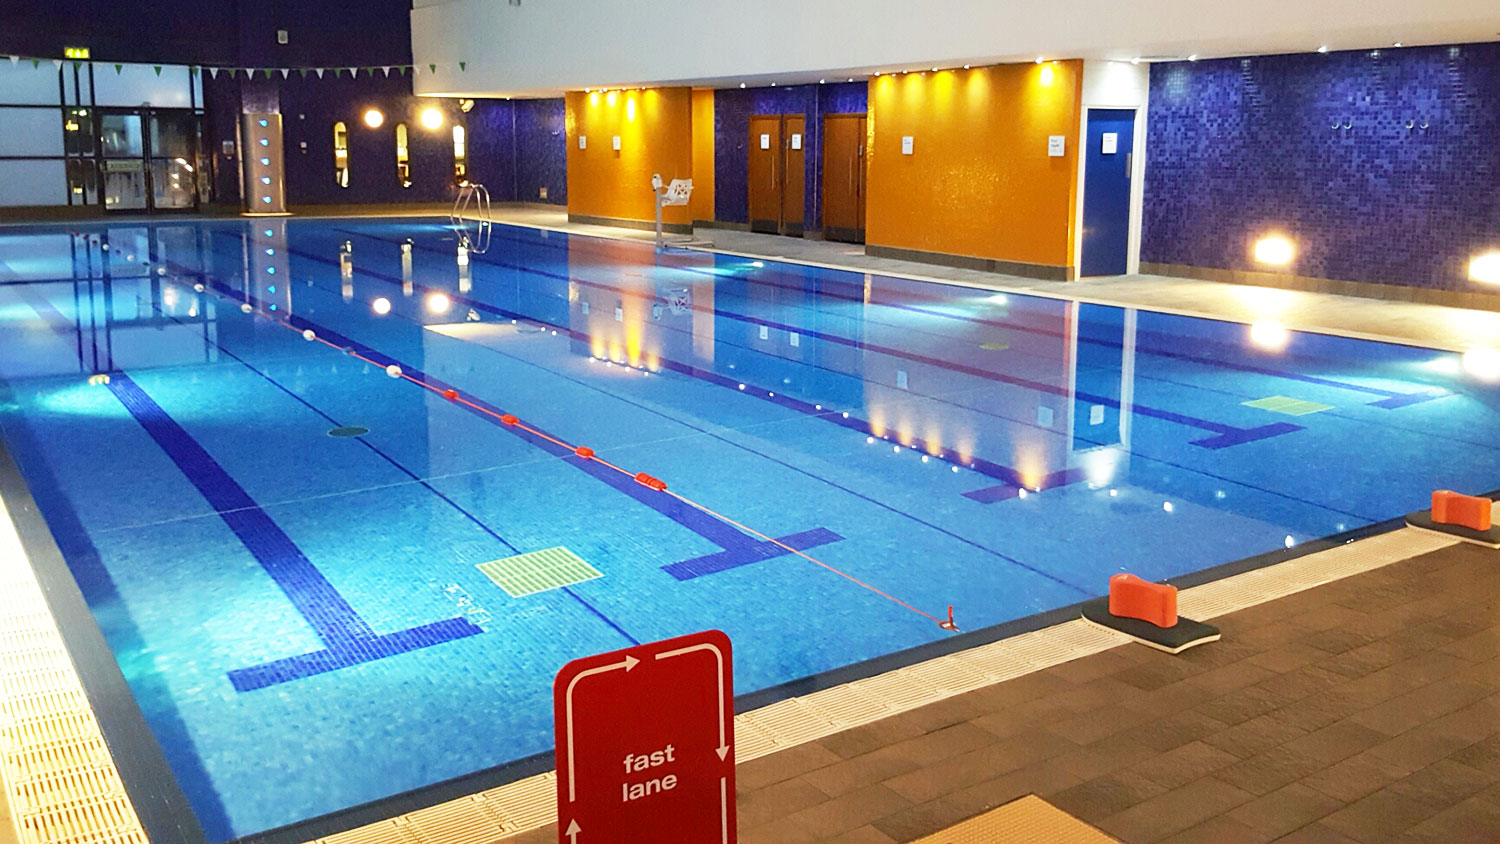 Nuffield health gym timetable chesterfield for Letchworth swimming pool timetable